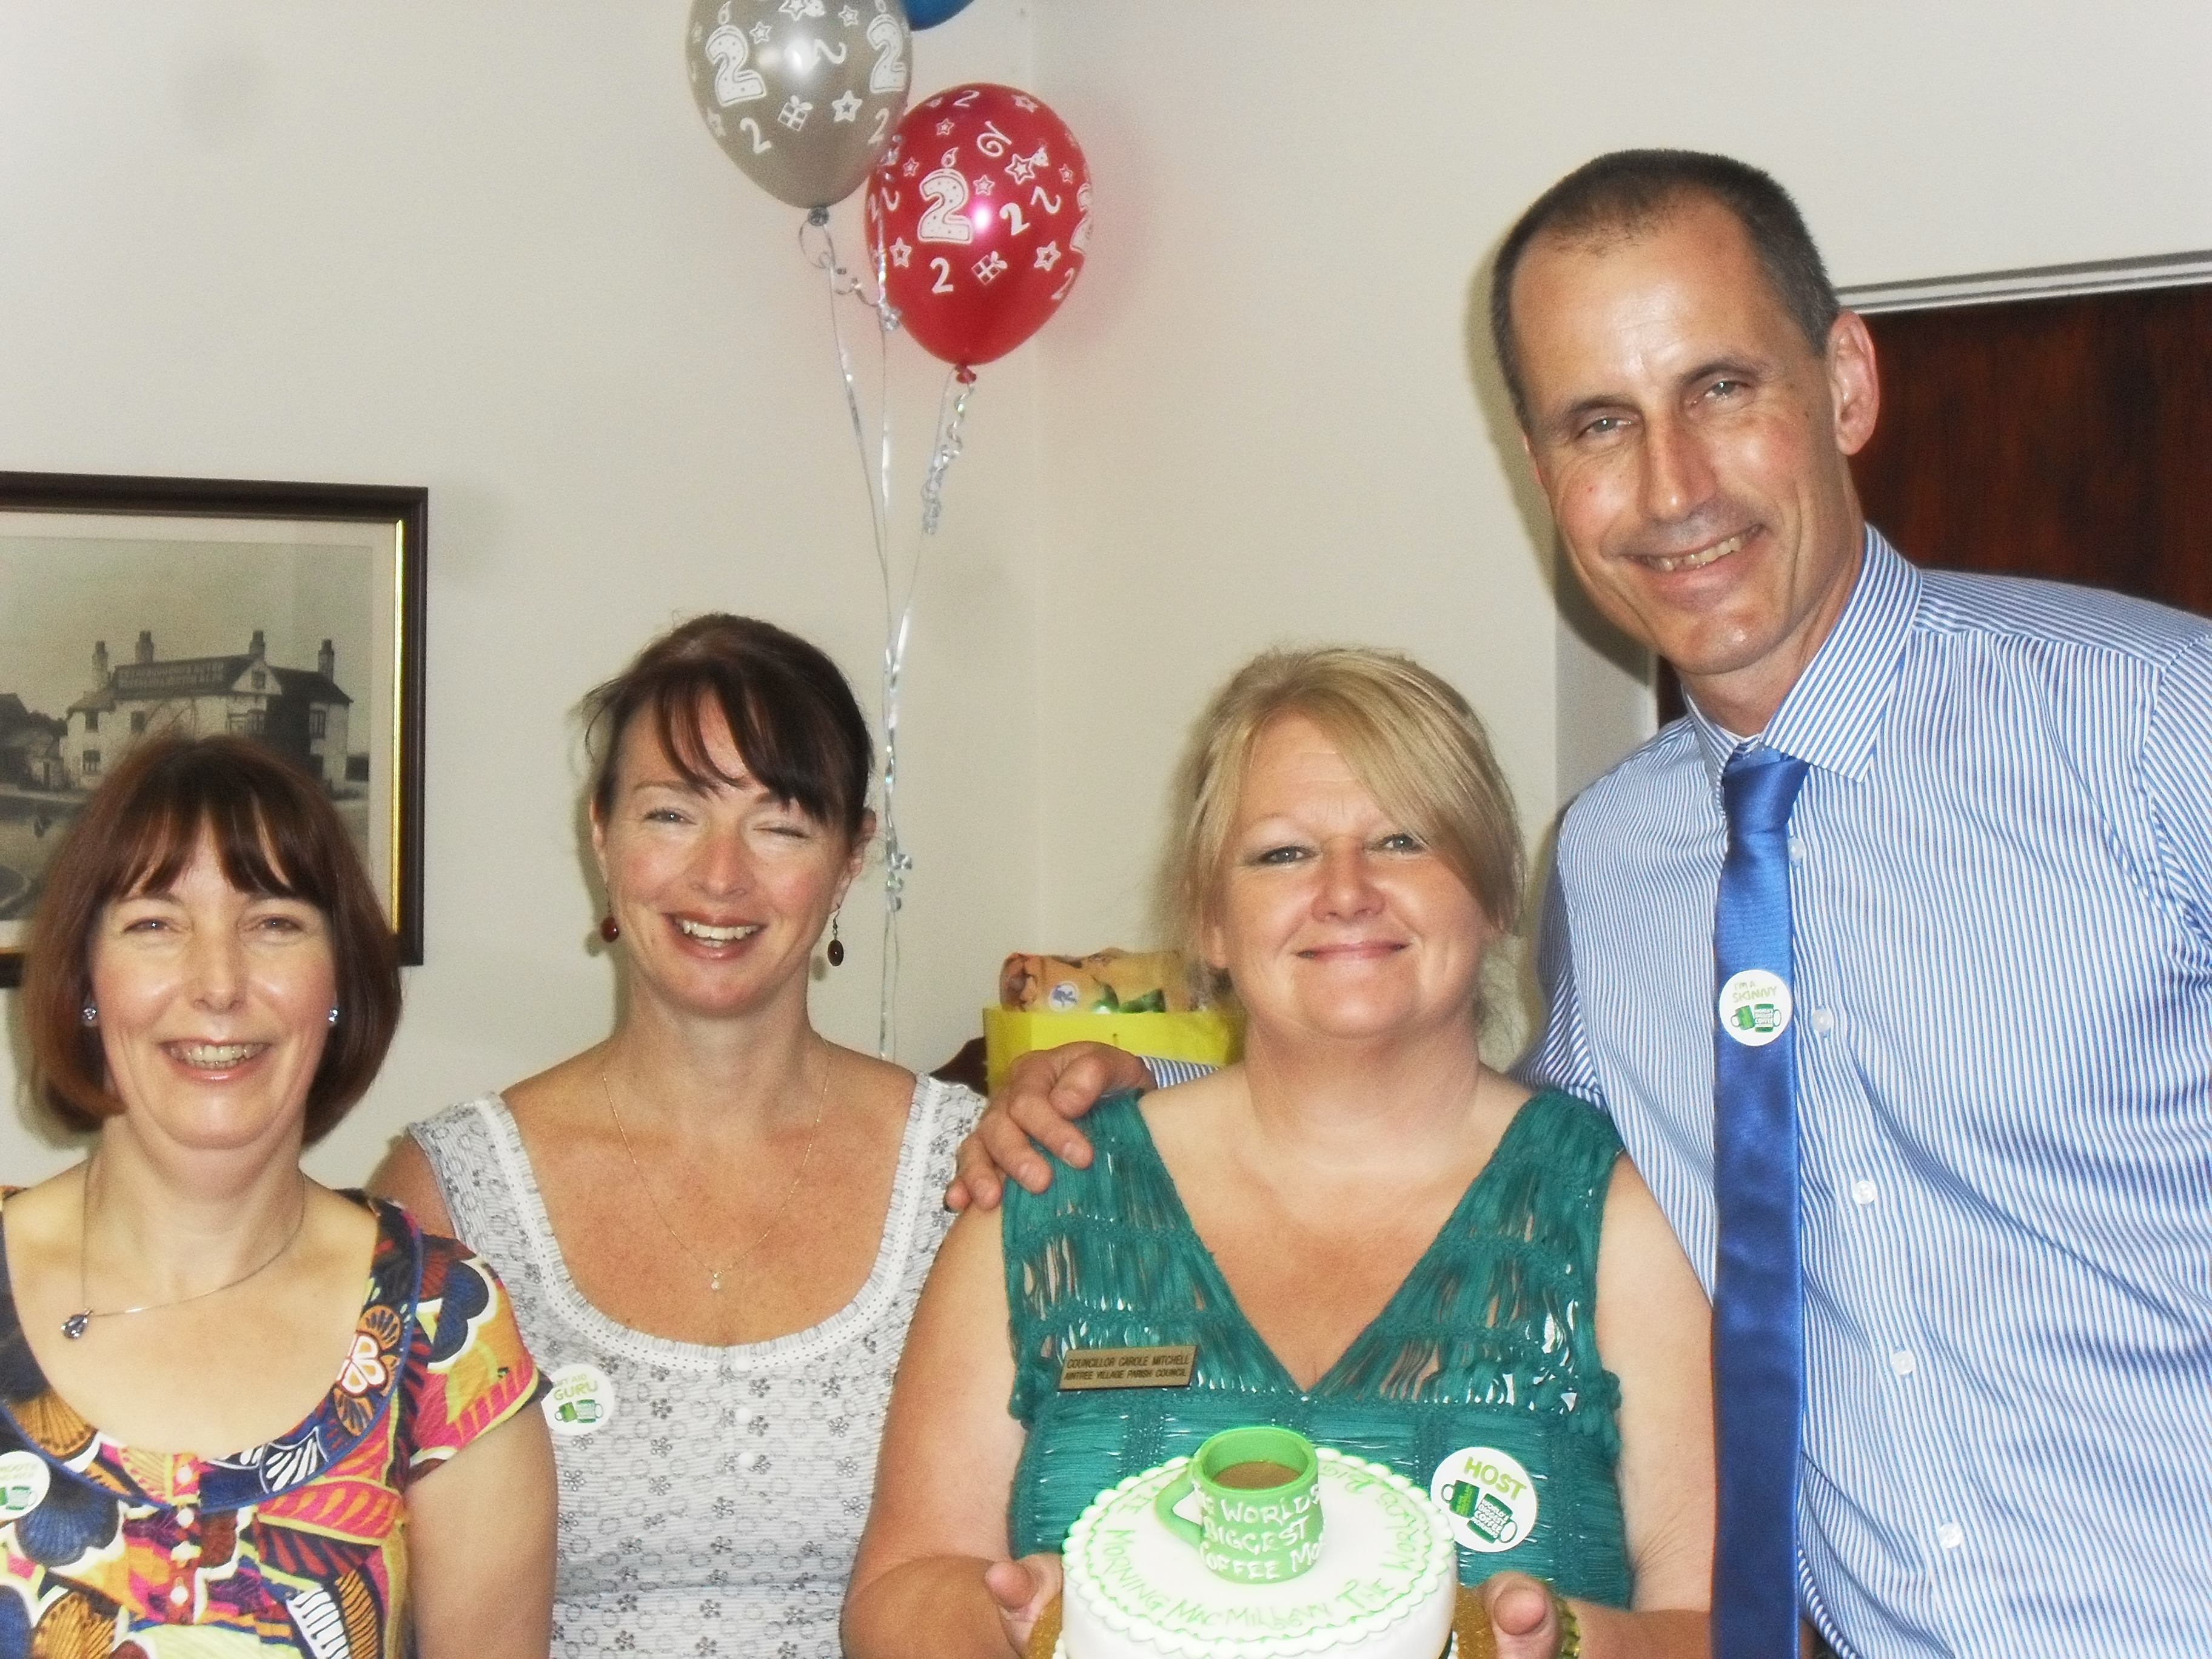 Bill Esterson MP with Aintree Village Parish Council chairman Carole Mitchell, Jan Pearse and Sheila Smith at the Macmillan Cancer Coffee Morning at the Harrow Drive council chamber.